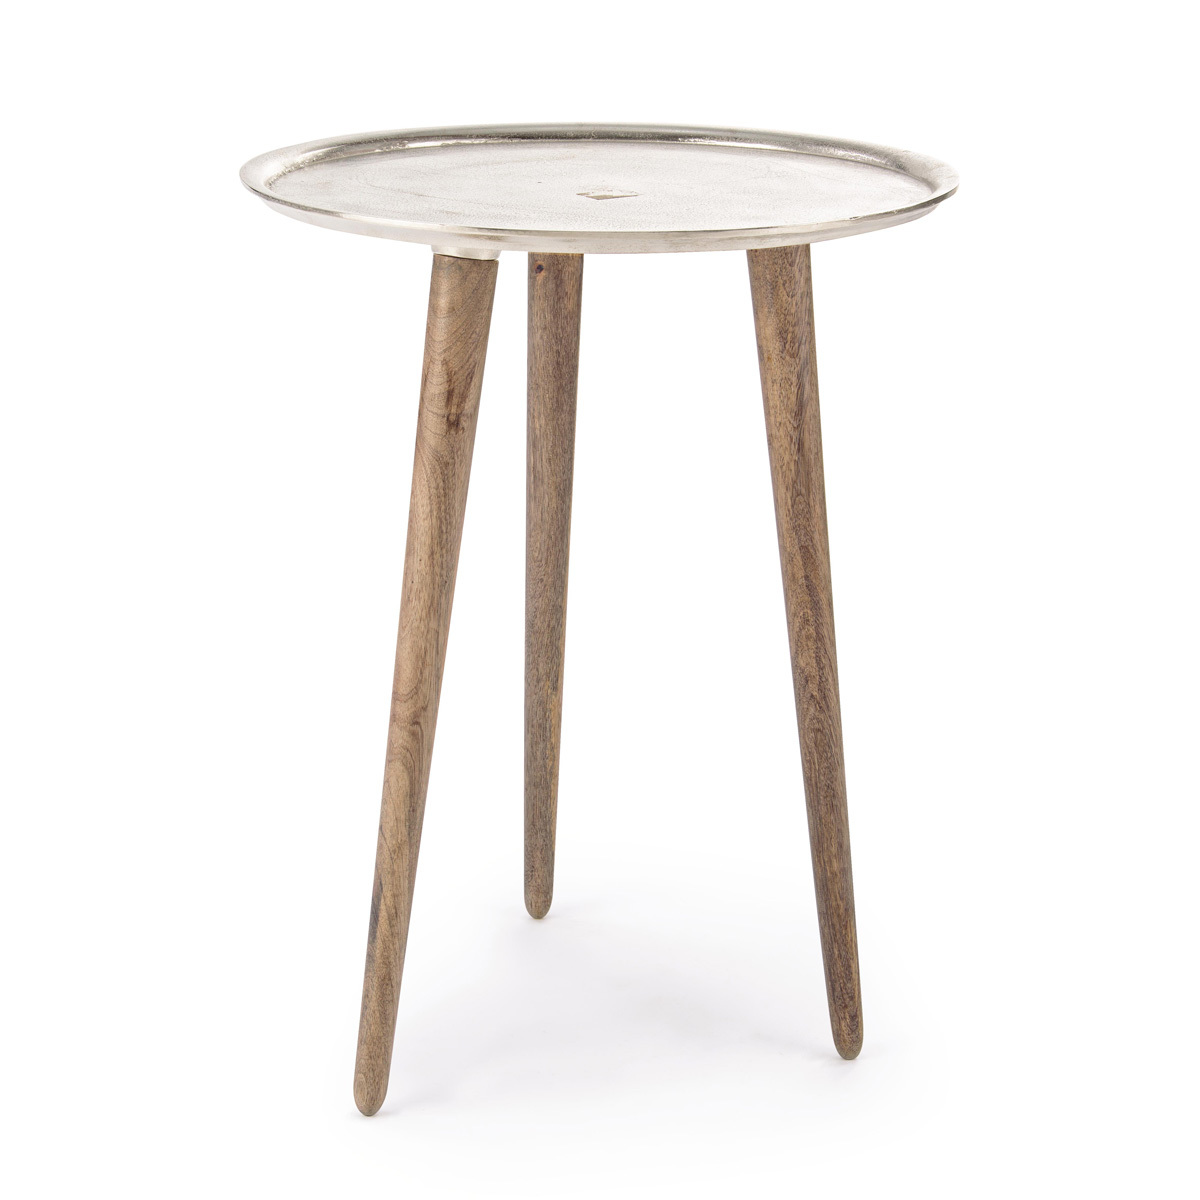 Photos 1: Bizzotto Wood and aluminum table d. 50 0746059